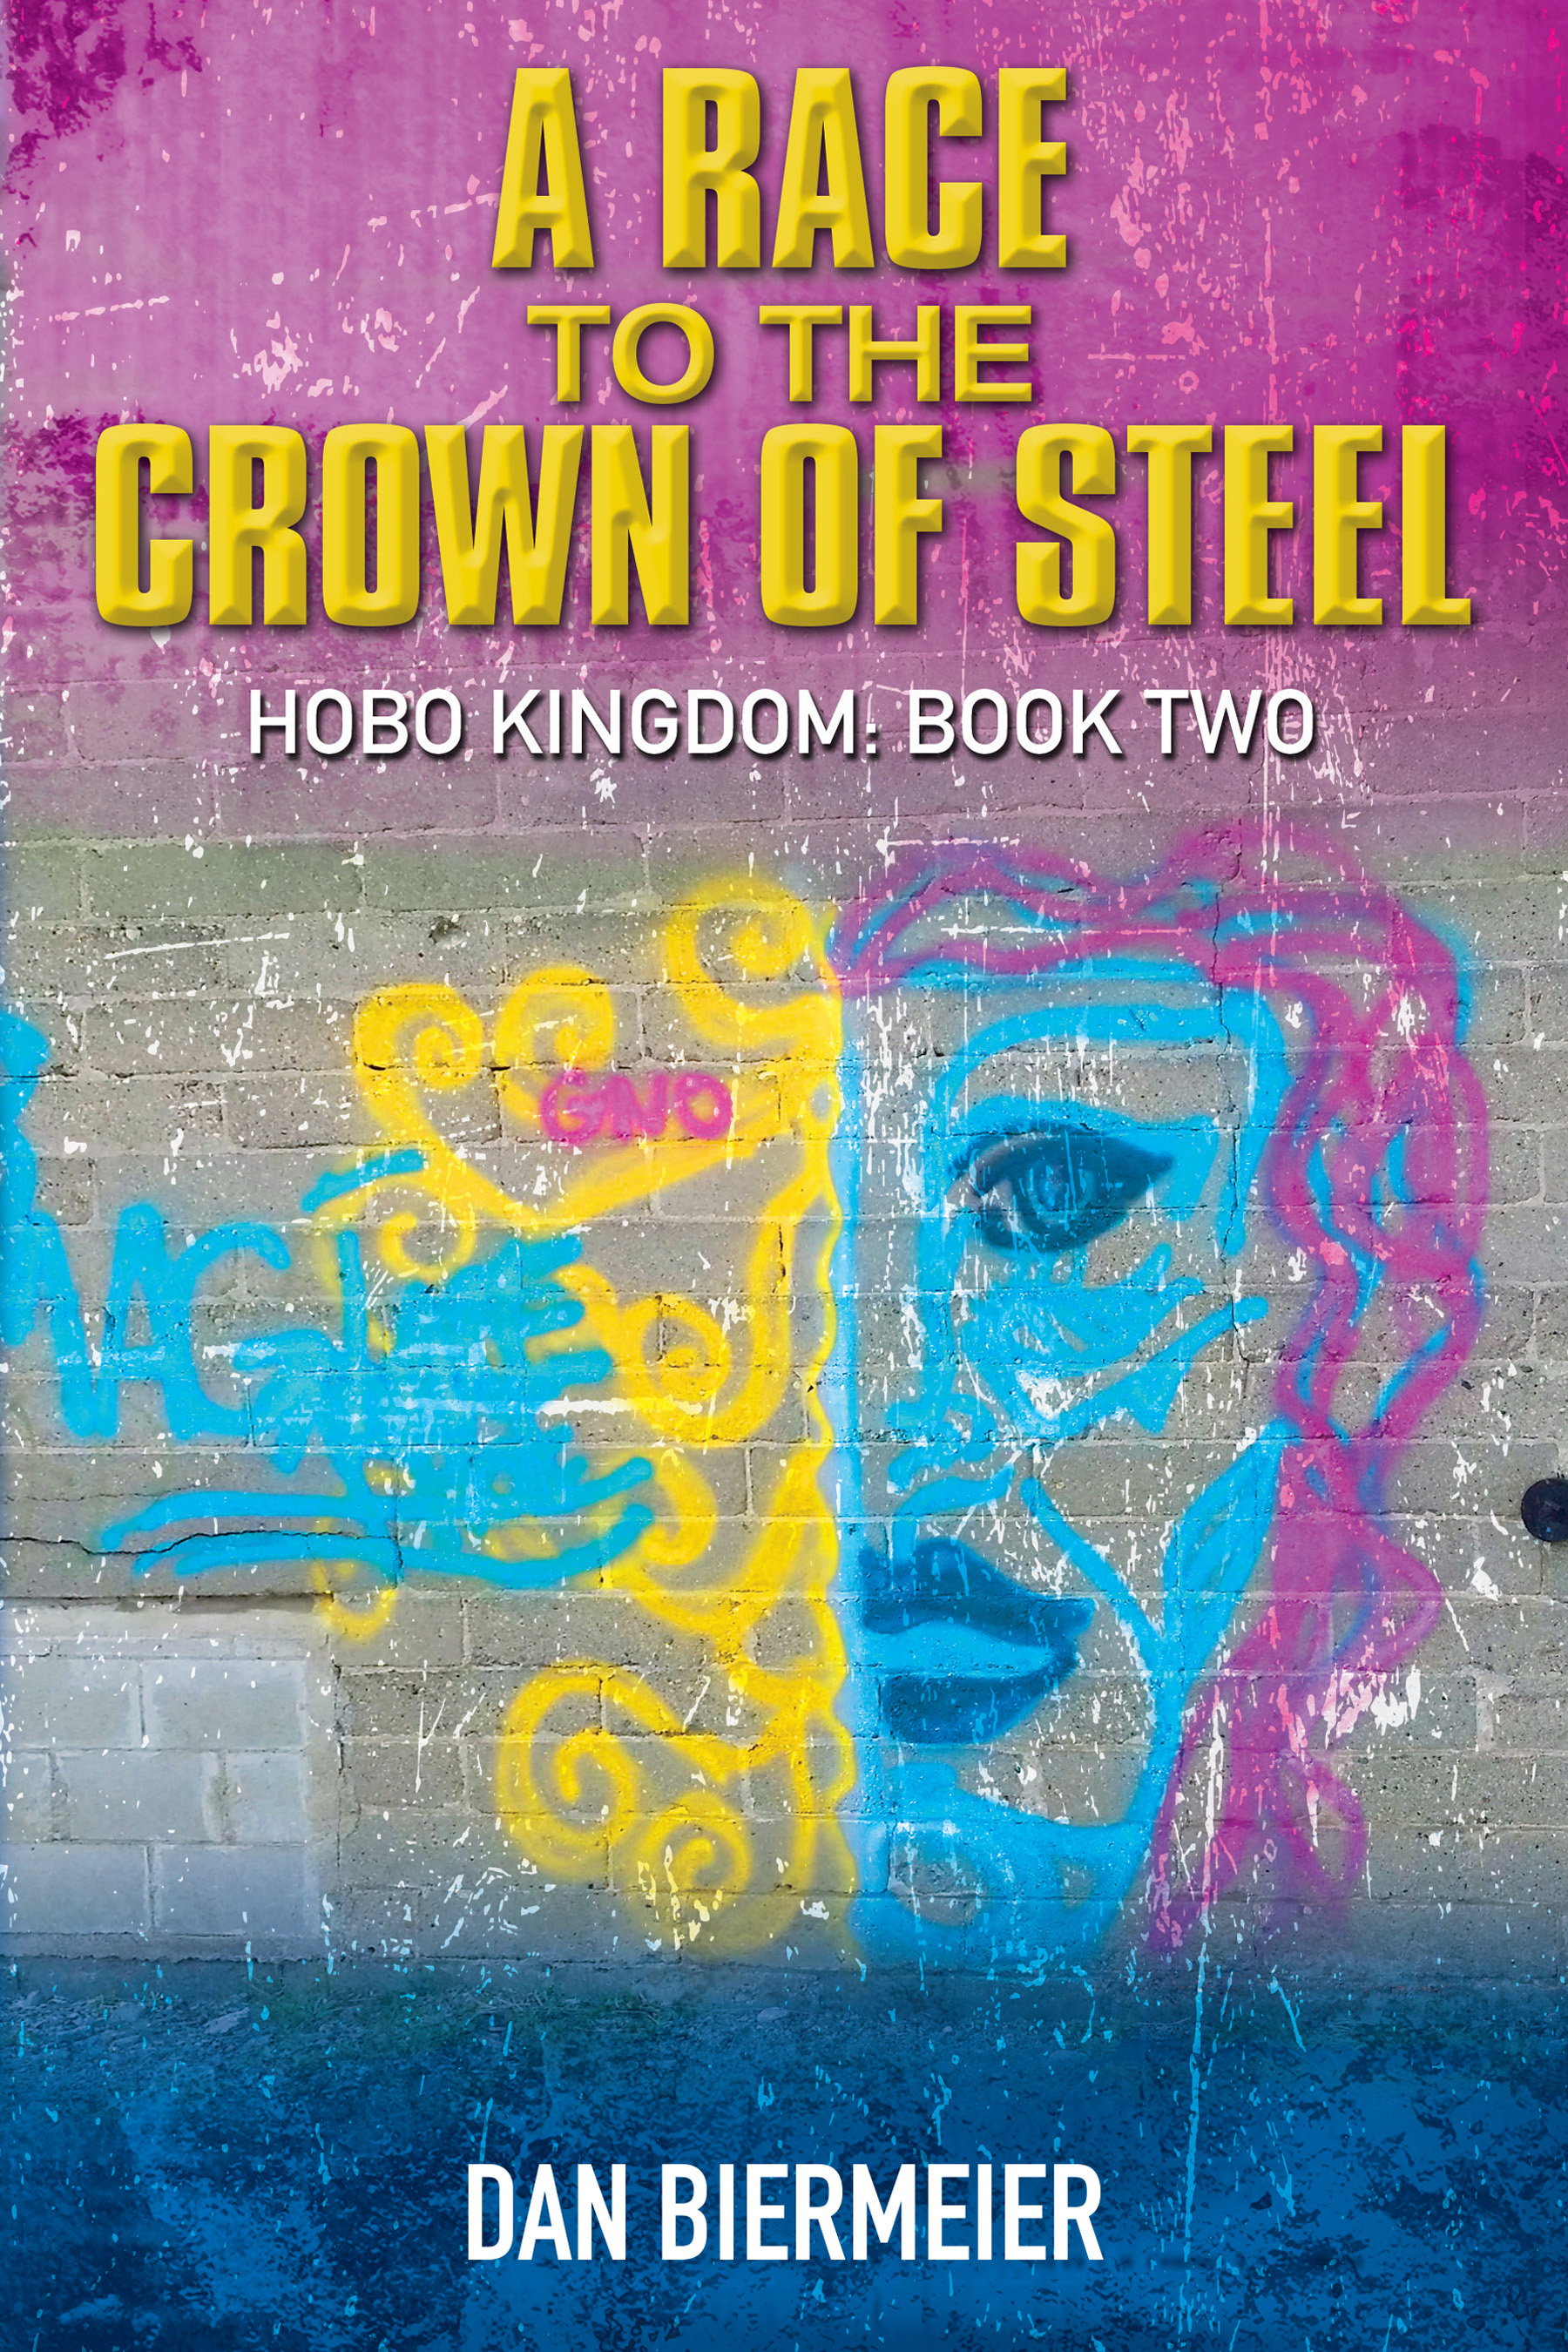 A Race to the Crown of Steel